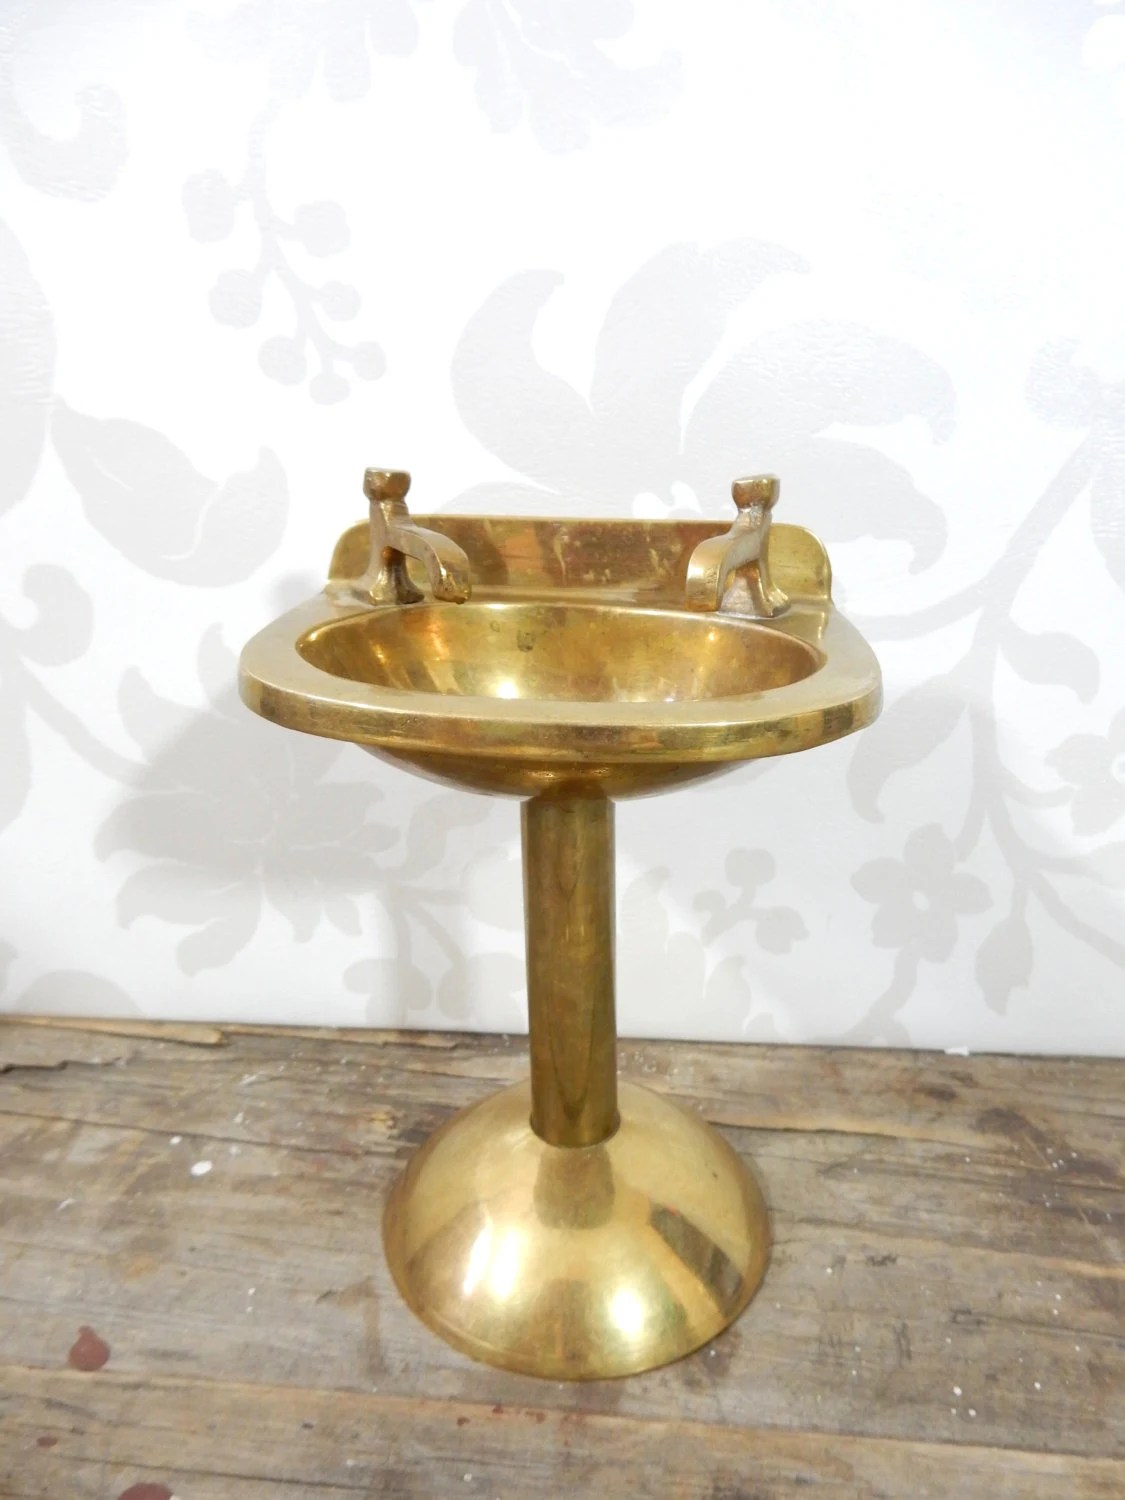 Brass Pedestal Sink Figure 5 inches tall bathroom fixture